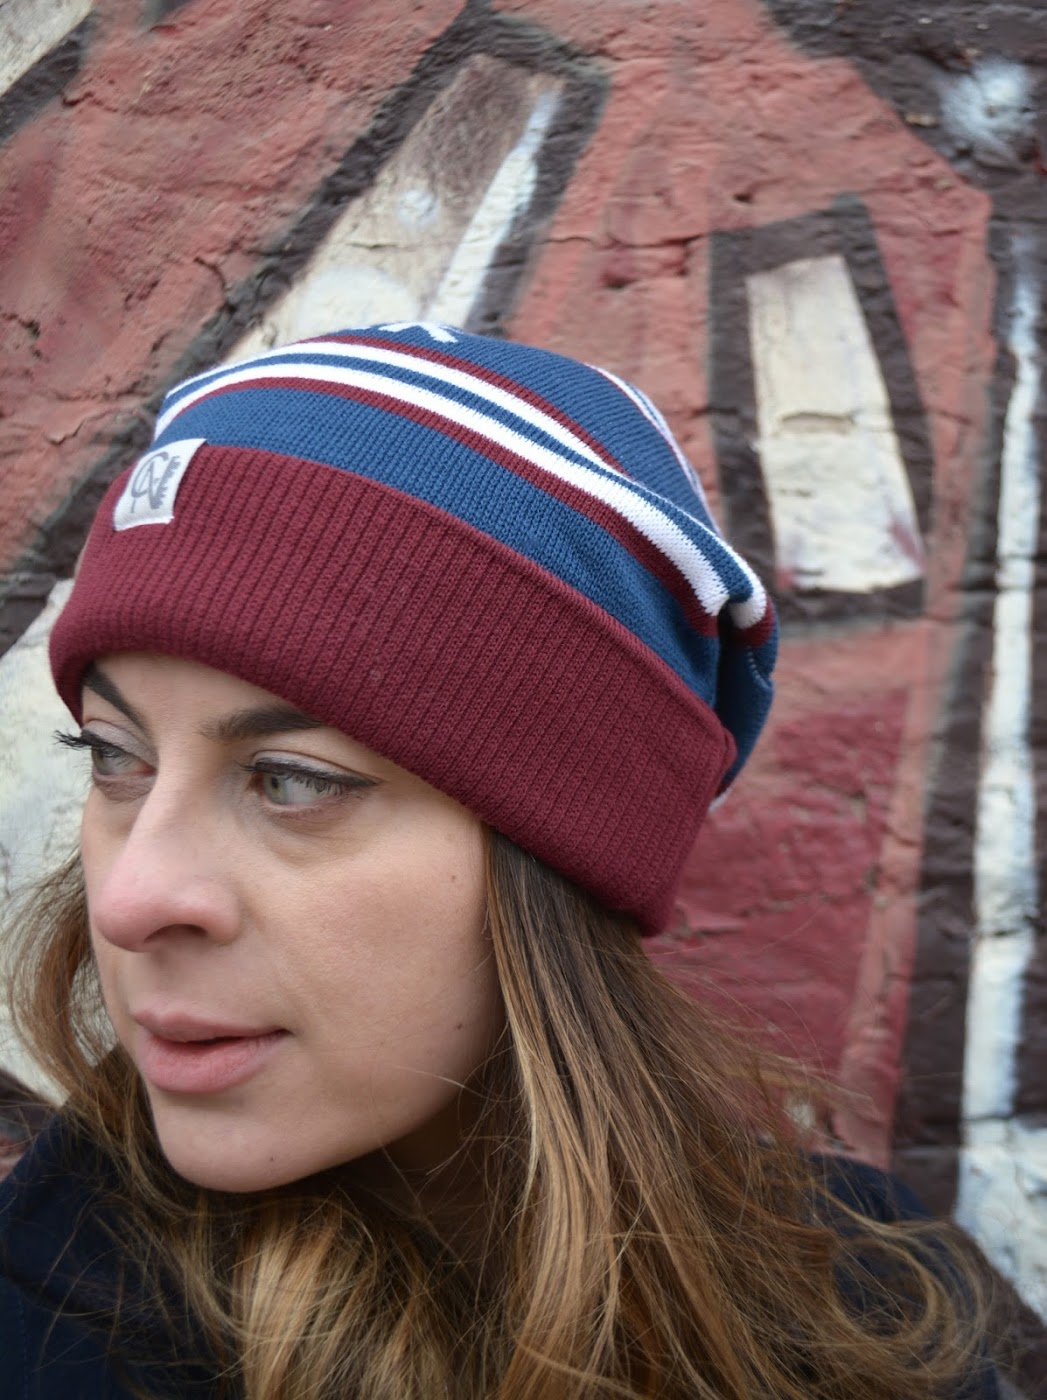 #LoveYourCity Beanies, Tuck Shop Trading Co., Tuck Shop Trading Co. beanies, City of Neighbourhoods toques, #LoveYourCity toques, retro styled toques, Chicago fashion blogger, Chicago streetstyle, Chicago style blogger, Latina influencer, Latina fashion blogger, bloguera de moda de Chicago, bloguera de Chicago, bloguera latina, Zara navy wool coat, abrigo largo de lana de Zara, high rise  jeans, Blank NYC high rise jeans, Forever 21 cable knit sweater, cable knit sweater, winter style, winter fashion, rep your hood, MANGO burgundy booties, botines color granate de MANGO, Wicker Park style, Wicker Park Chicago, Stan's Donuts, bronze Zara crossbody, bandolera bronce de Zara, Desiree Velasquez, Pistachio glazed doughnut from Stan's Donuts, Stan's Donuts Wicker Parker, CTA Damen Blue Line